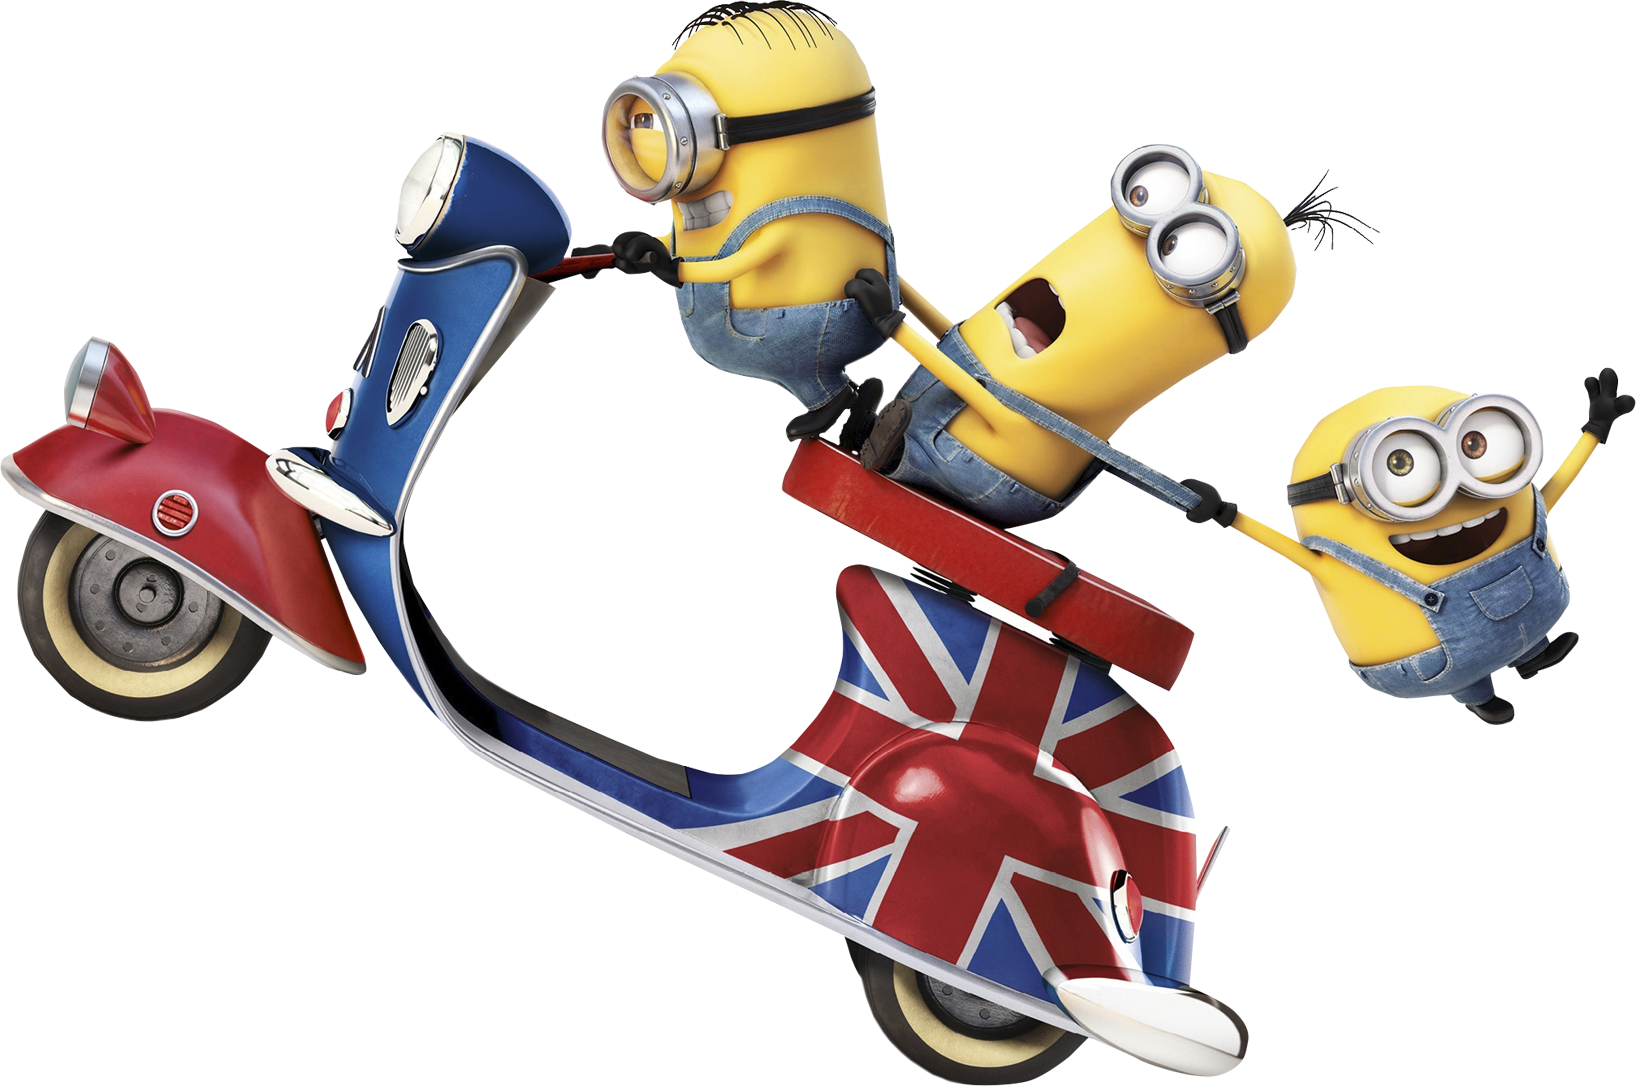 1636x1086 Minions Png Images Free Download